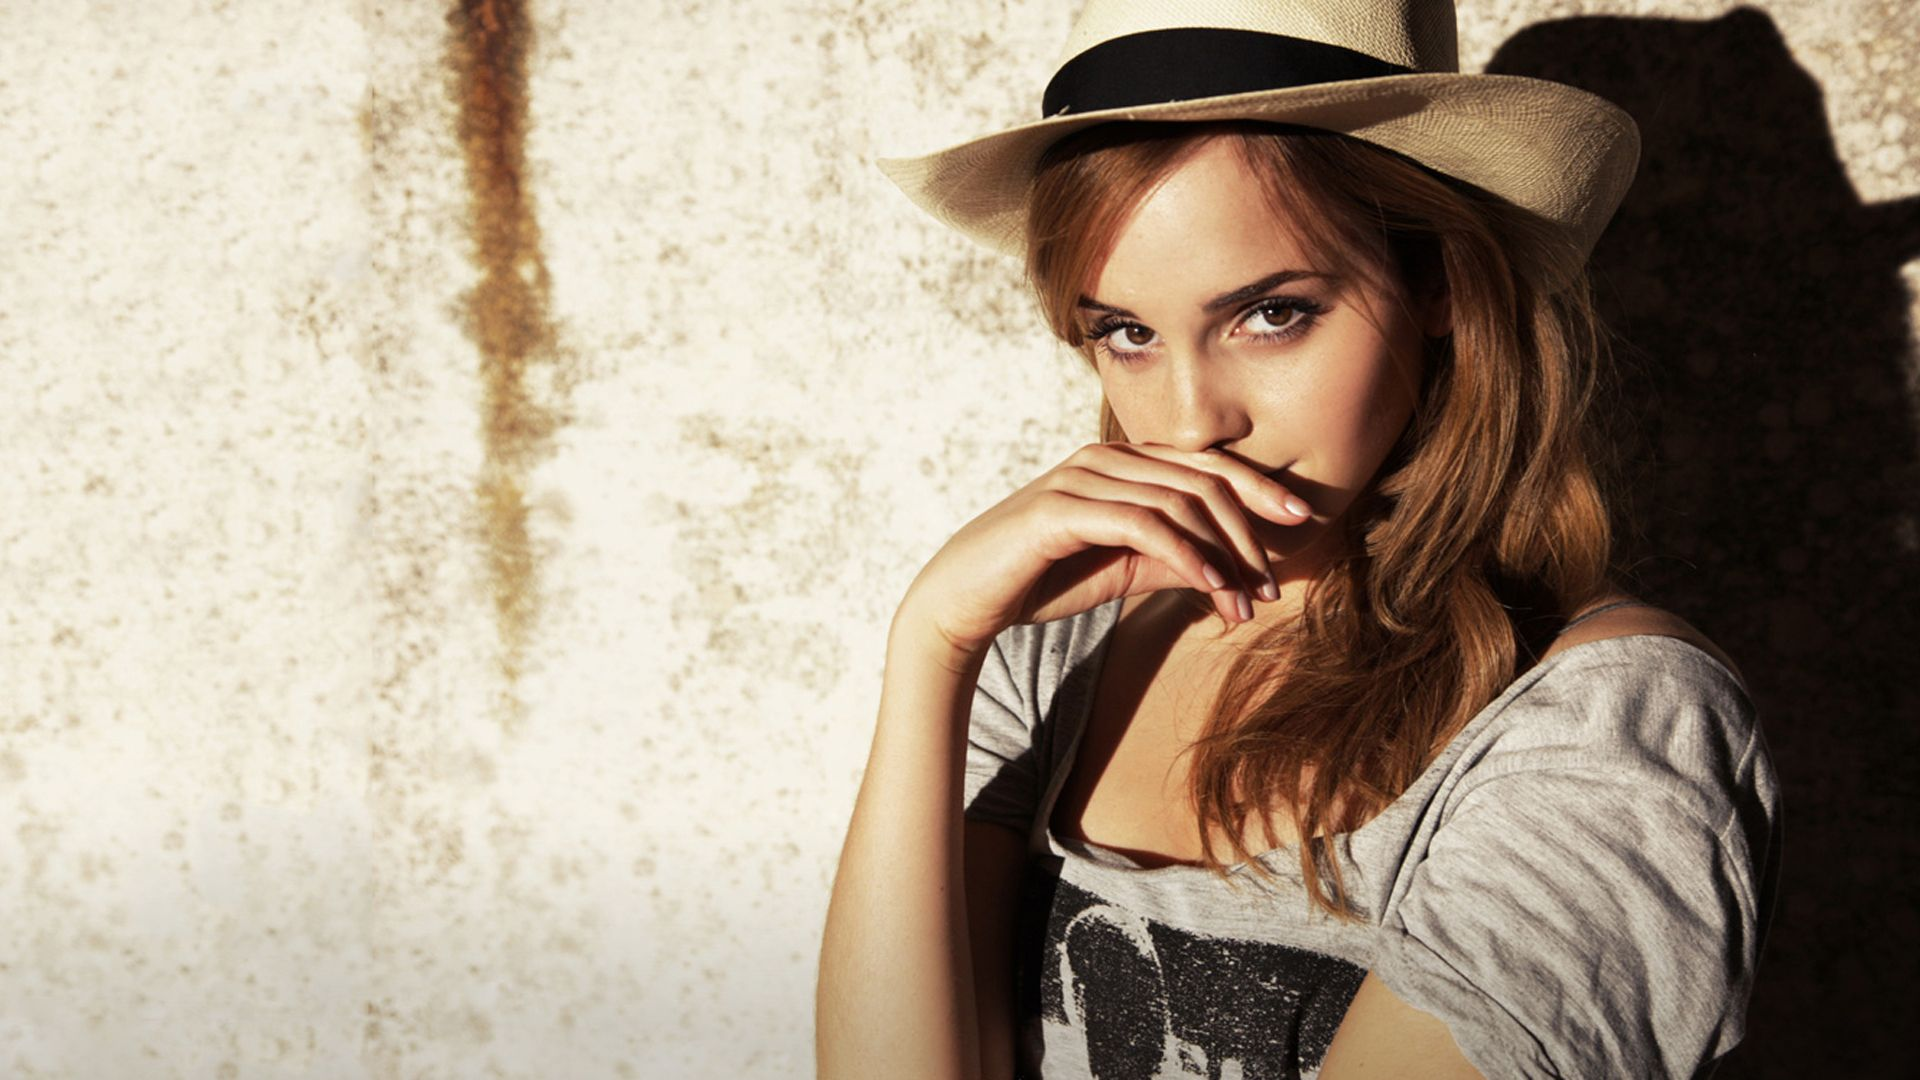 emma watson hd wallpapers - free download latest emma watson hd